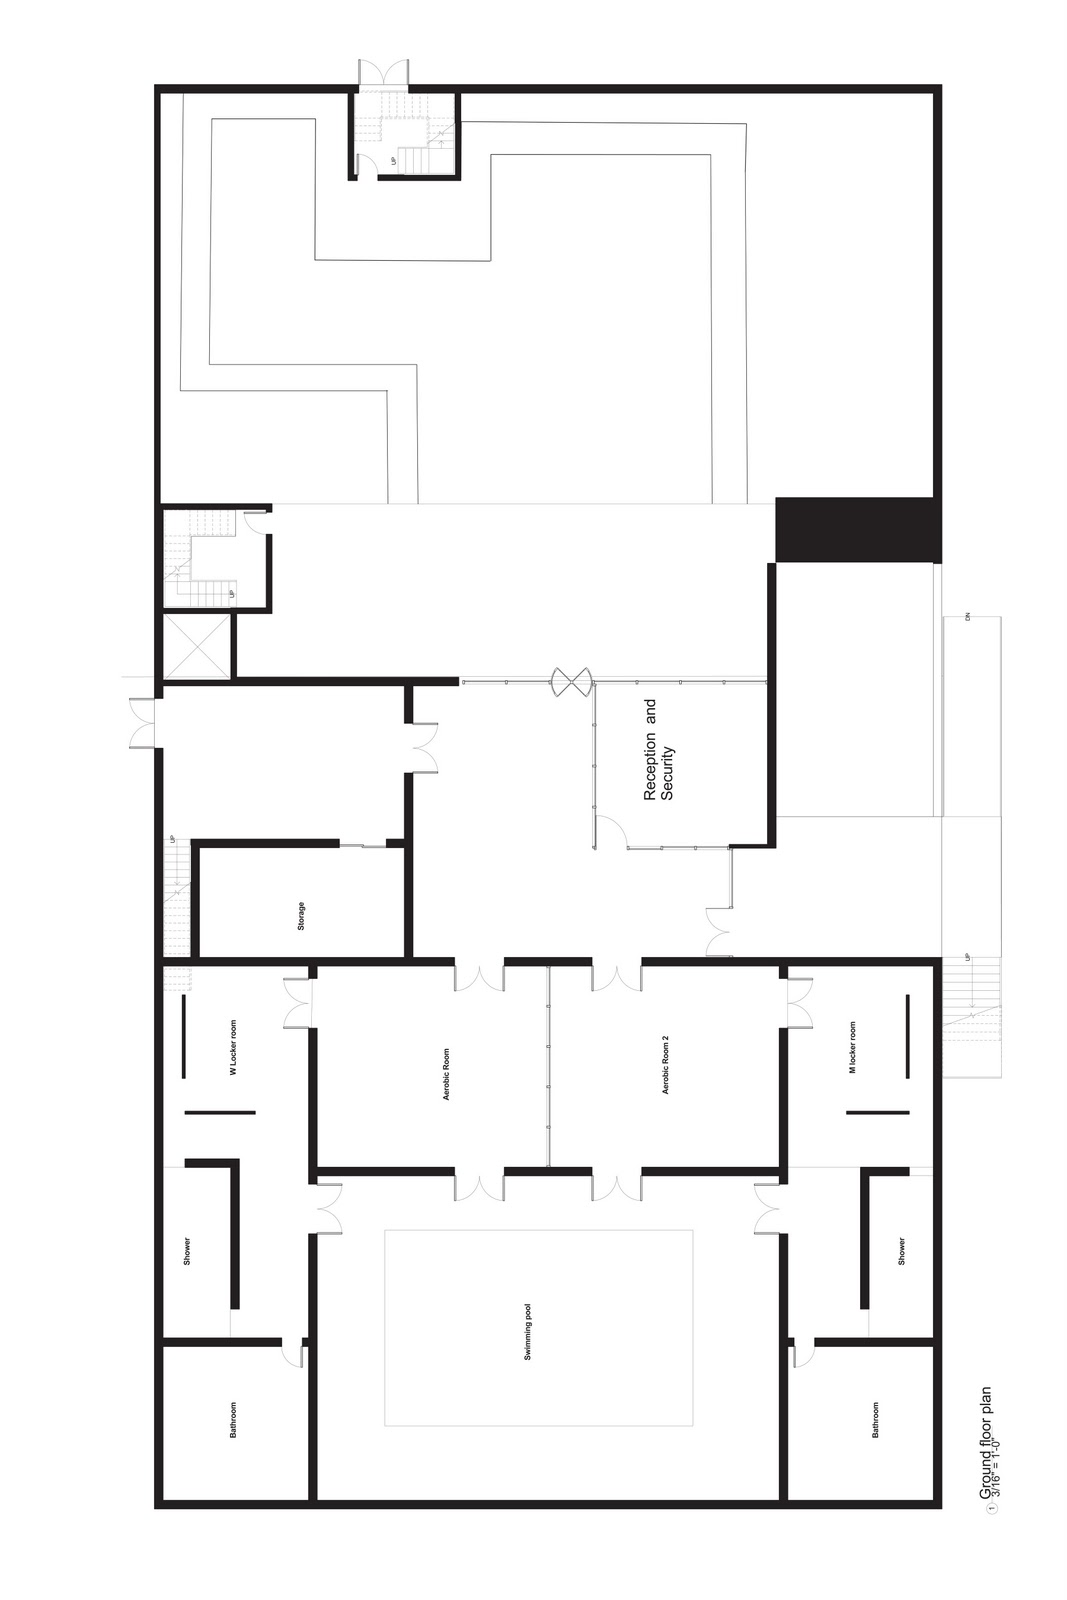 ... Floor Plans With Furniture Layout. on simple fire station floor plan